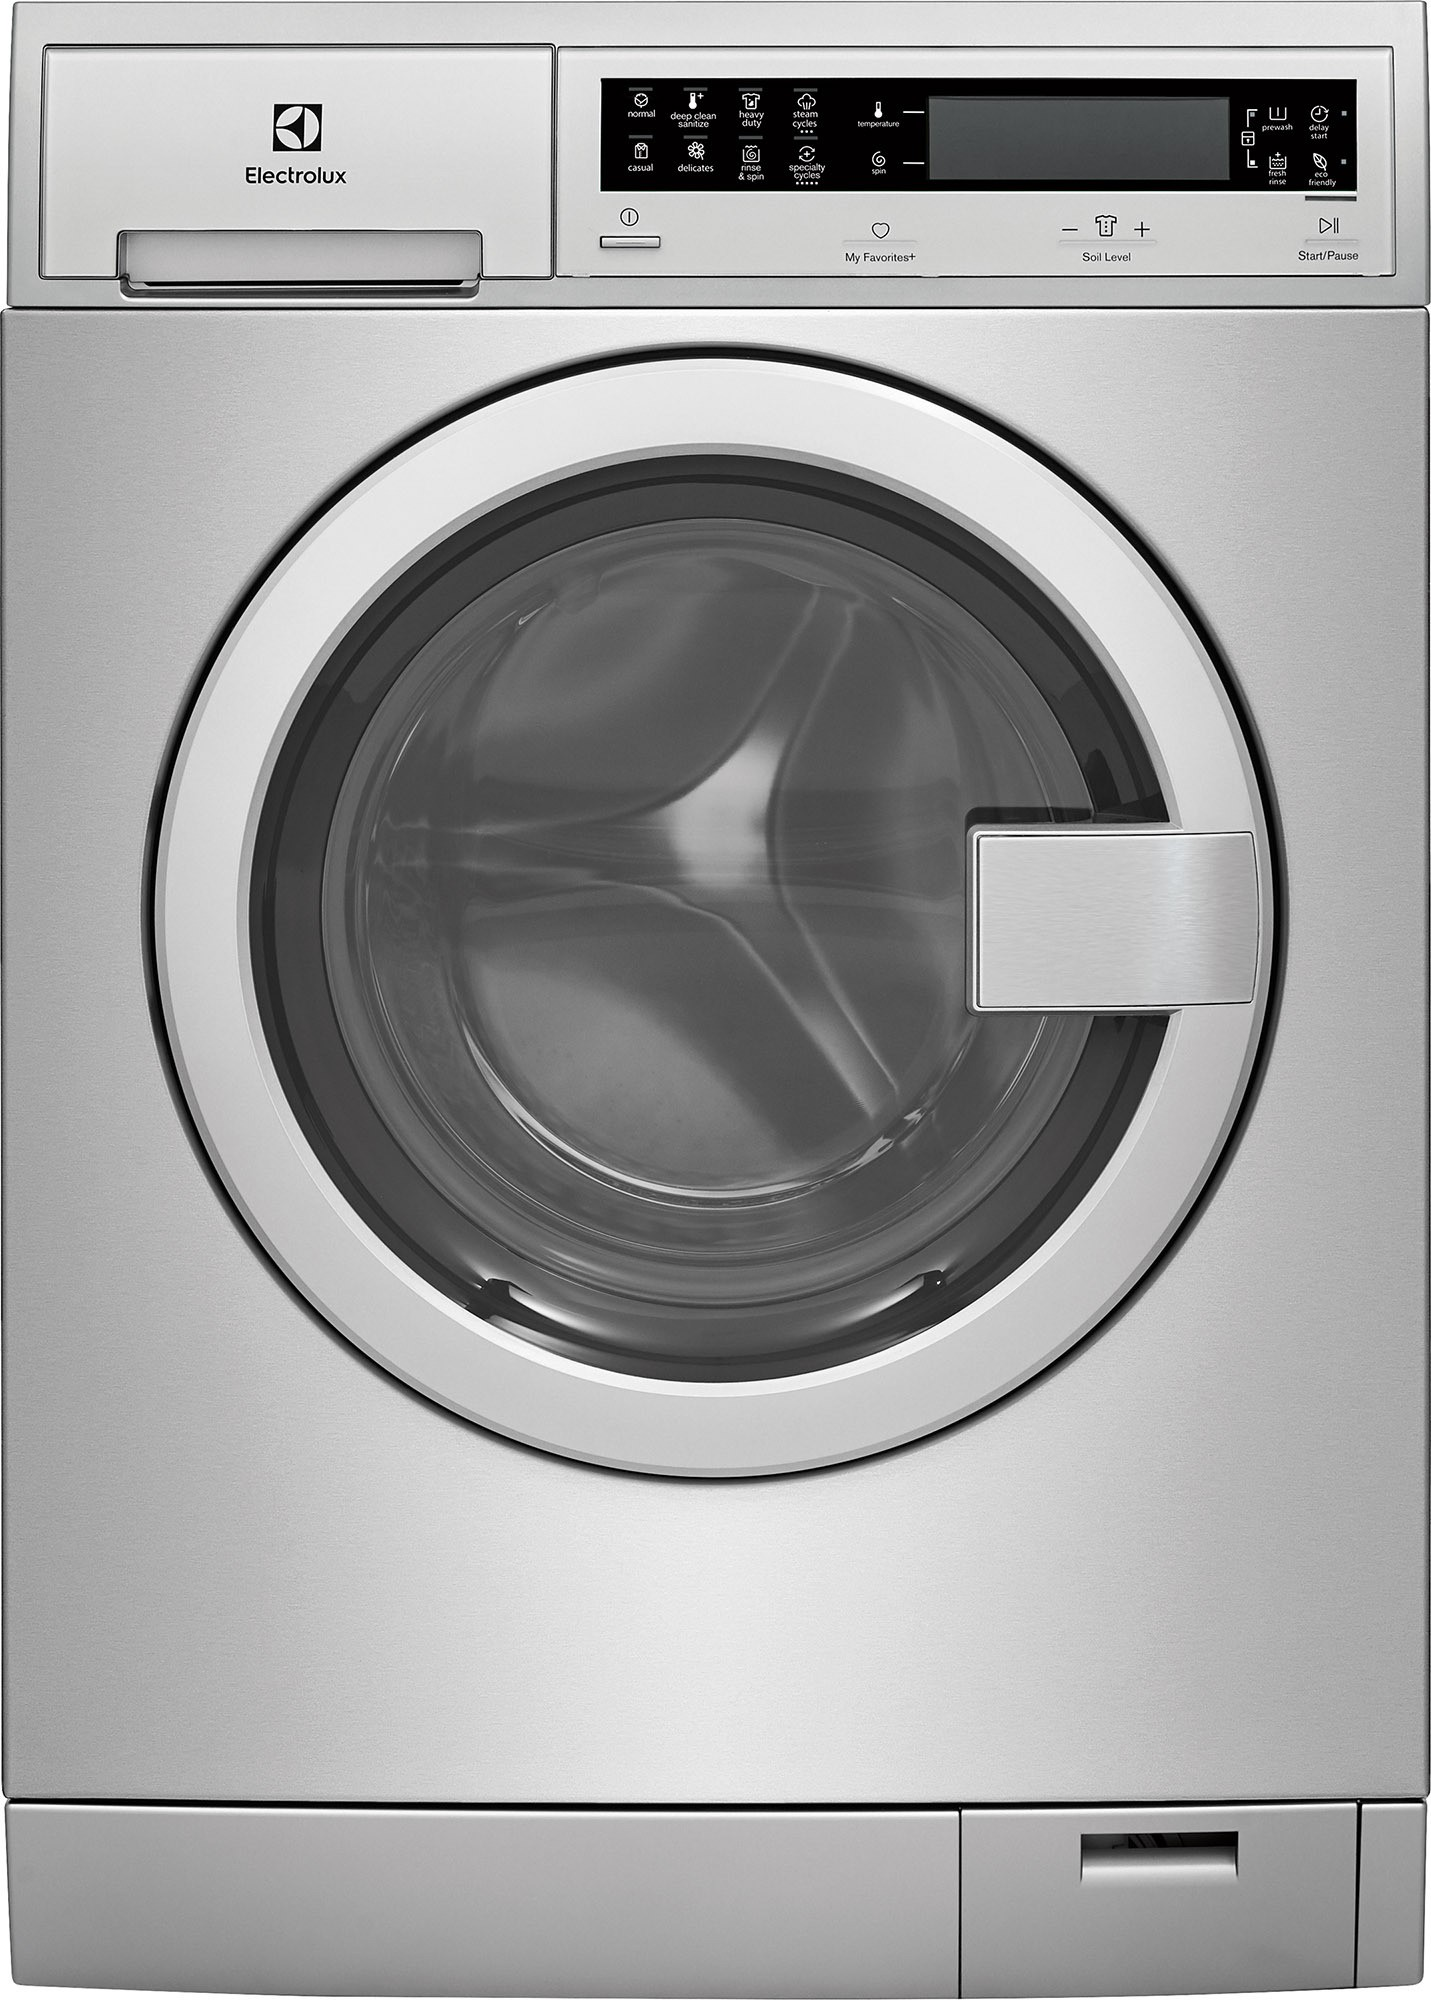 electrolux dryer installation instructions